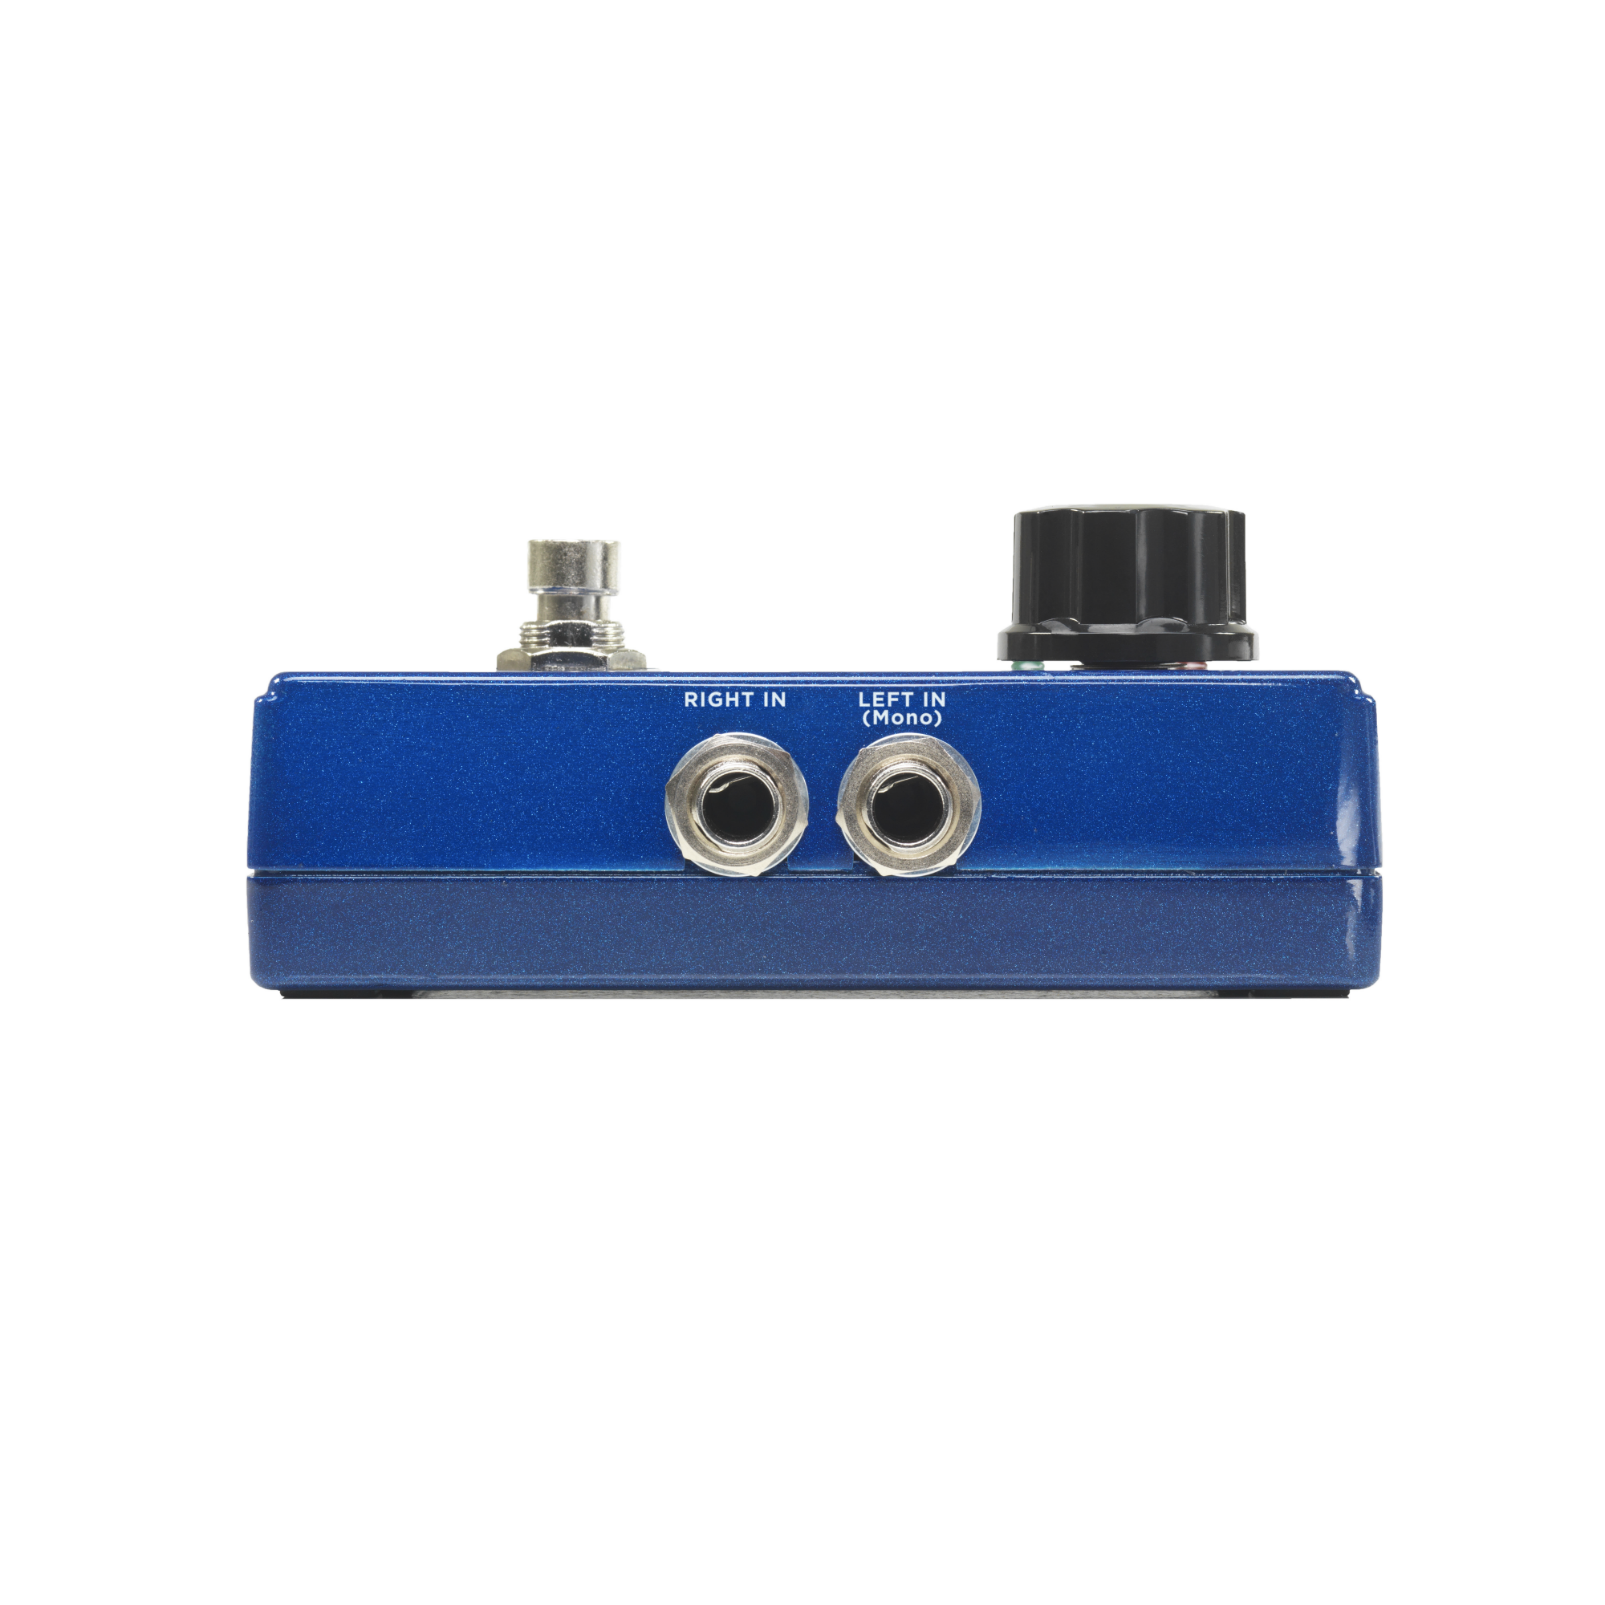 JamMan Express XT - Blue - Compact Stereo Looper with JamSync - Detailshot 3